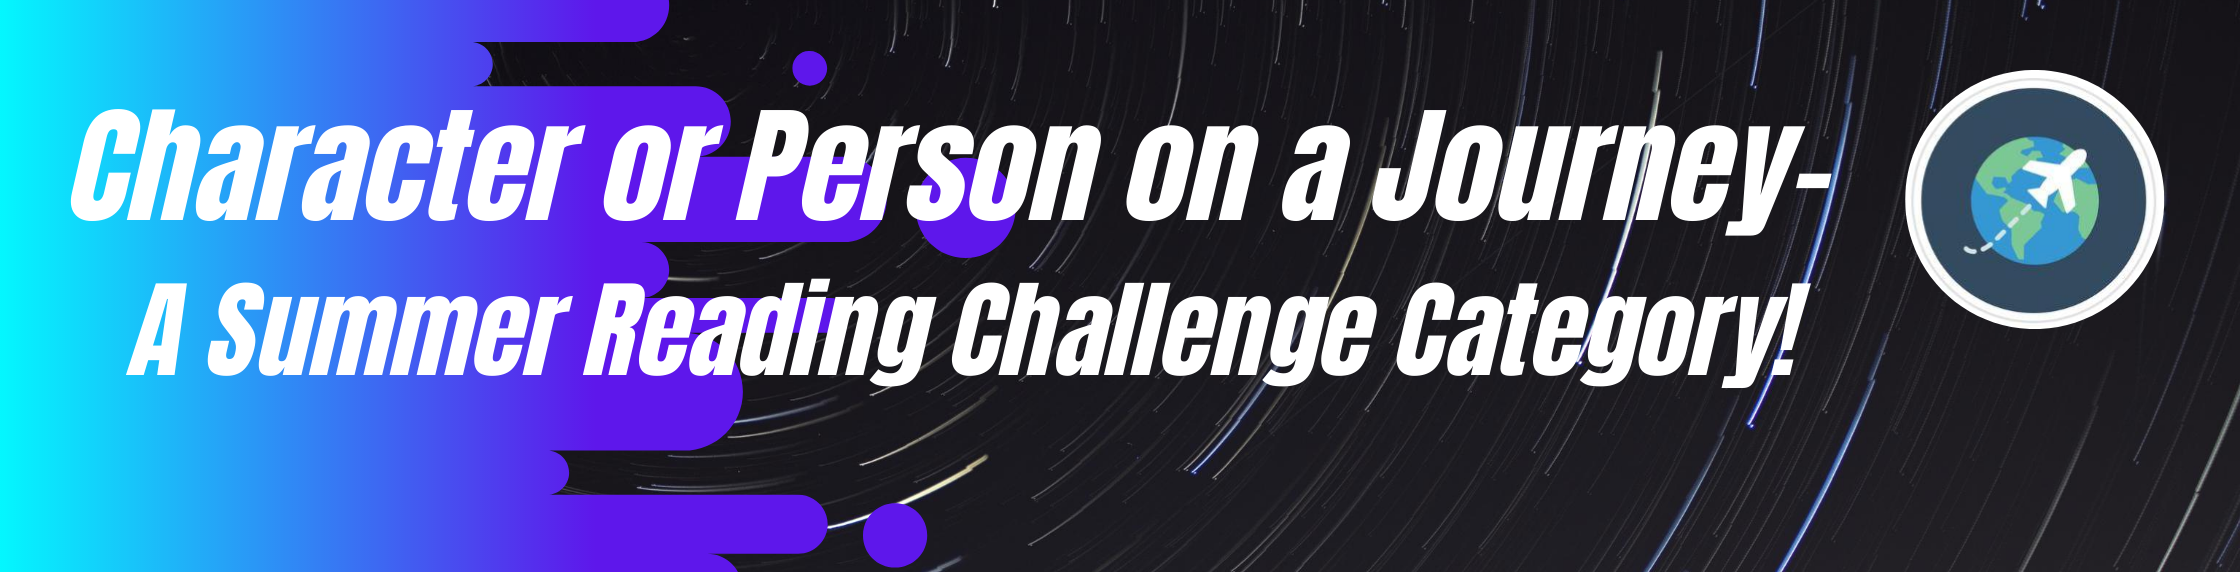 character or person on a journey - a summer reading challenge category